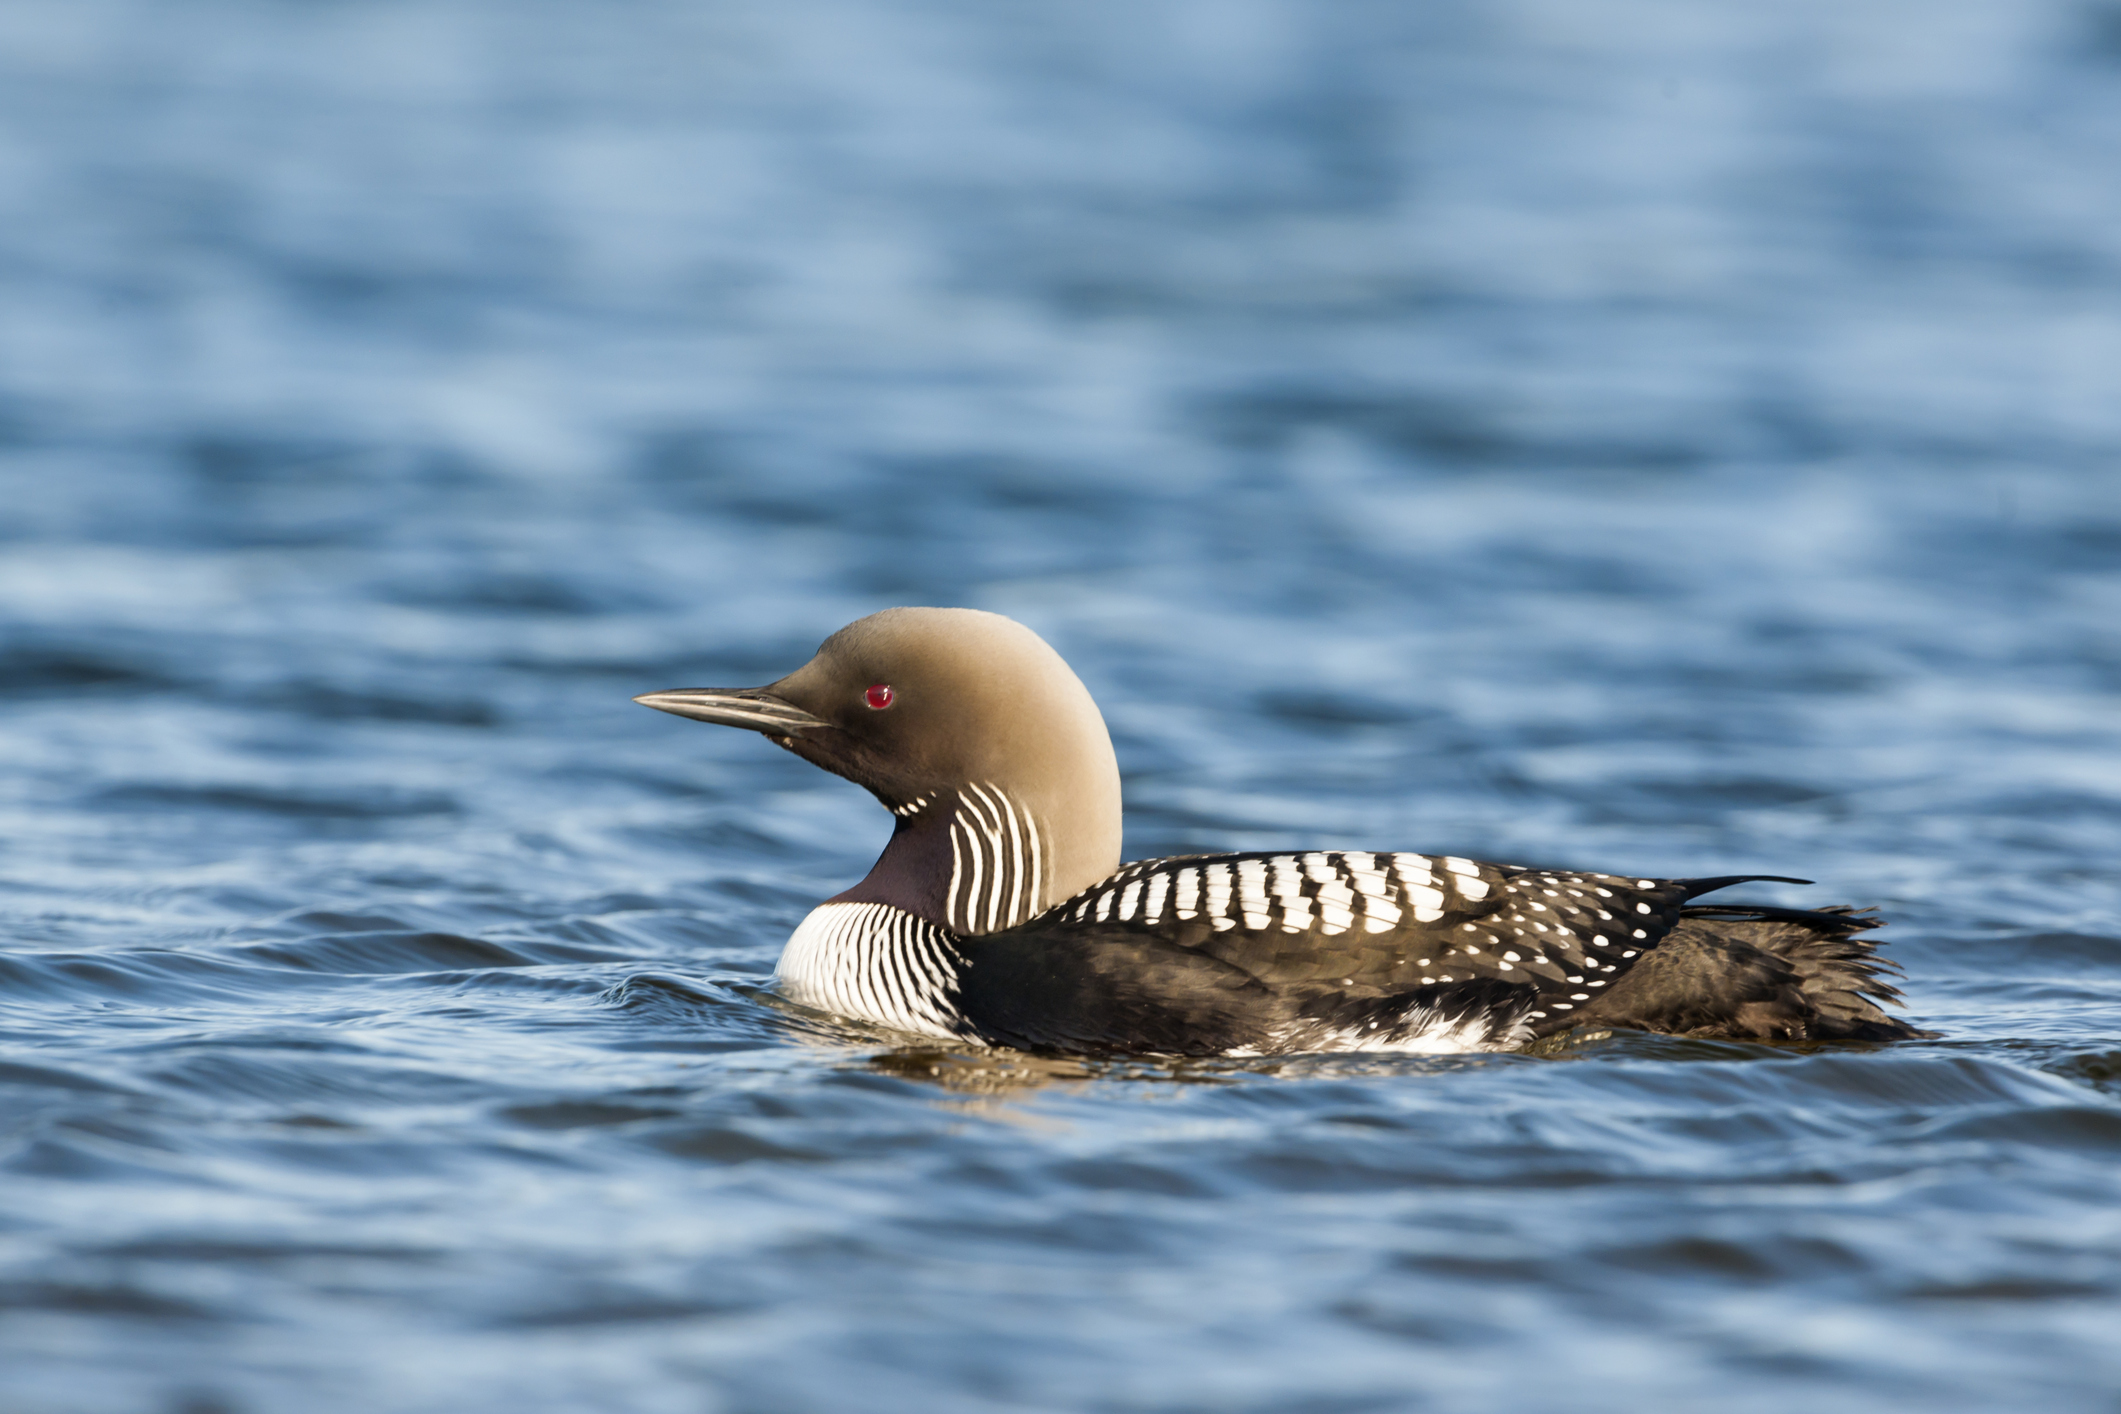 Pacific loon in ocean